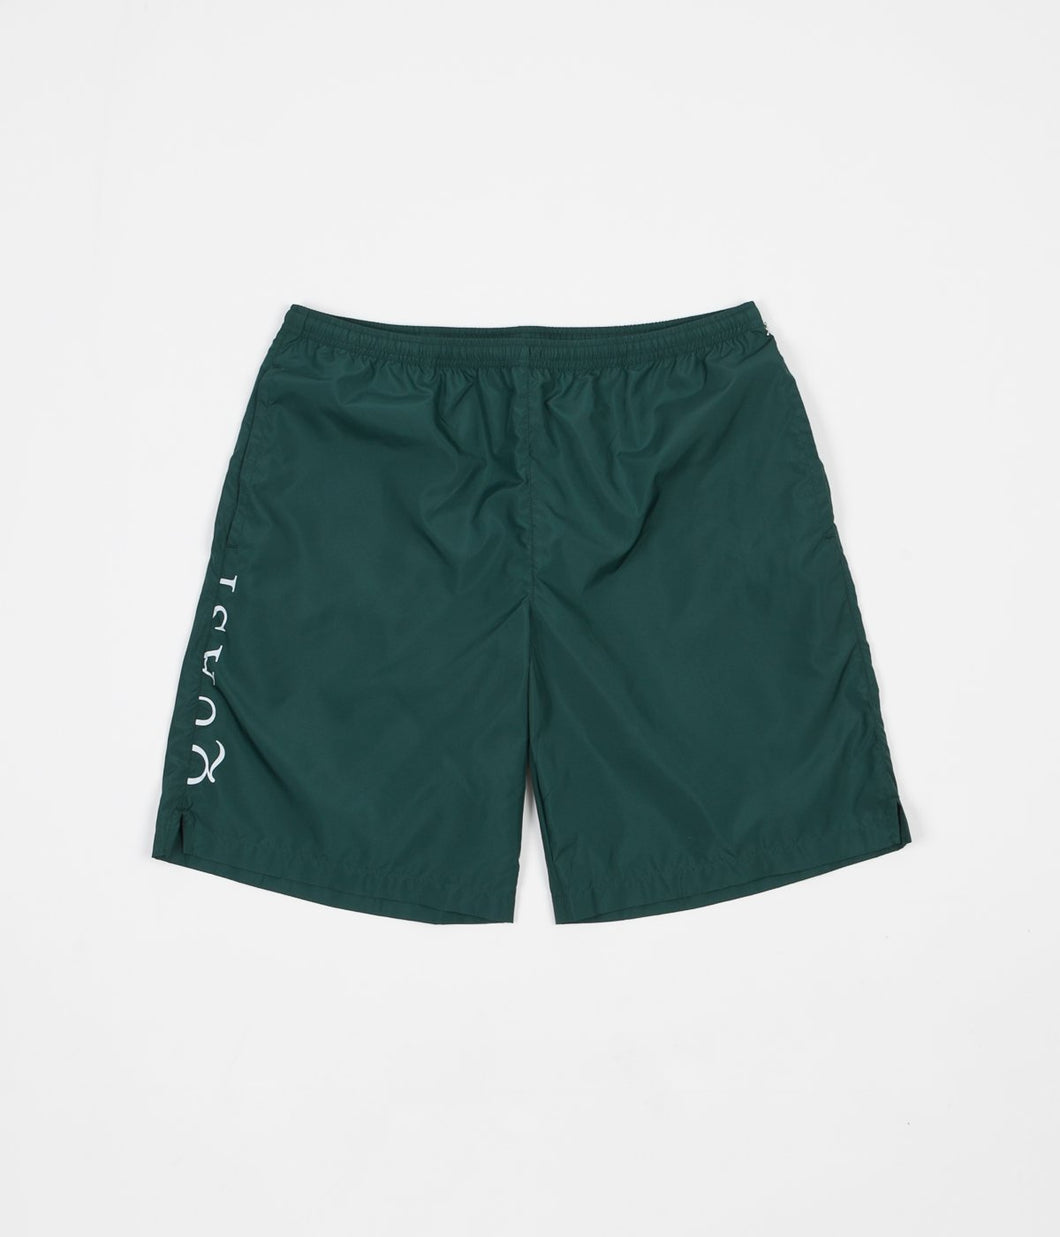 Marq Water Short Forrest LG